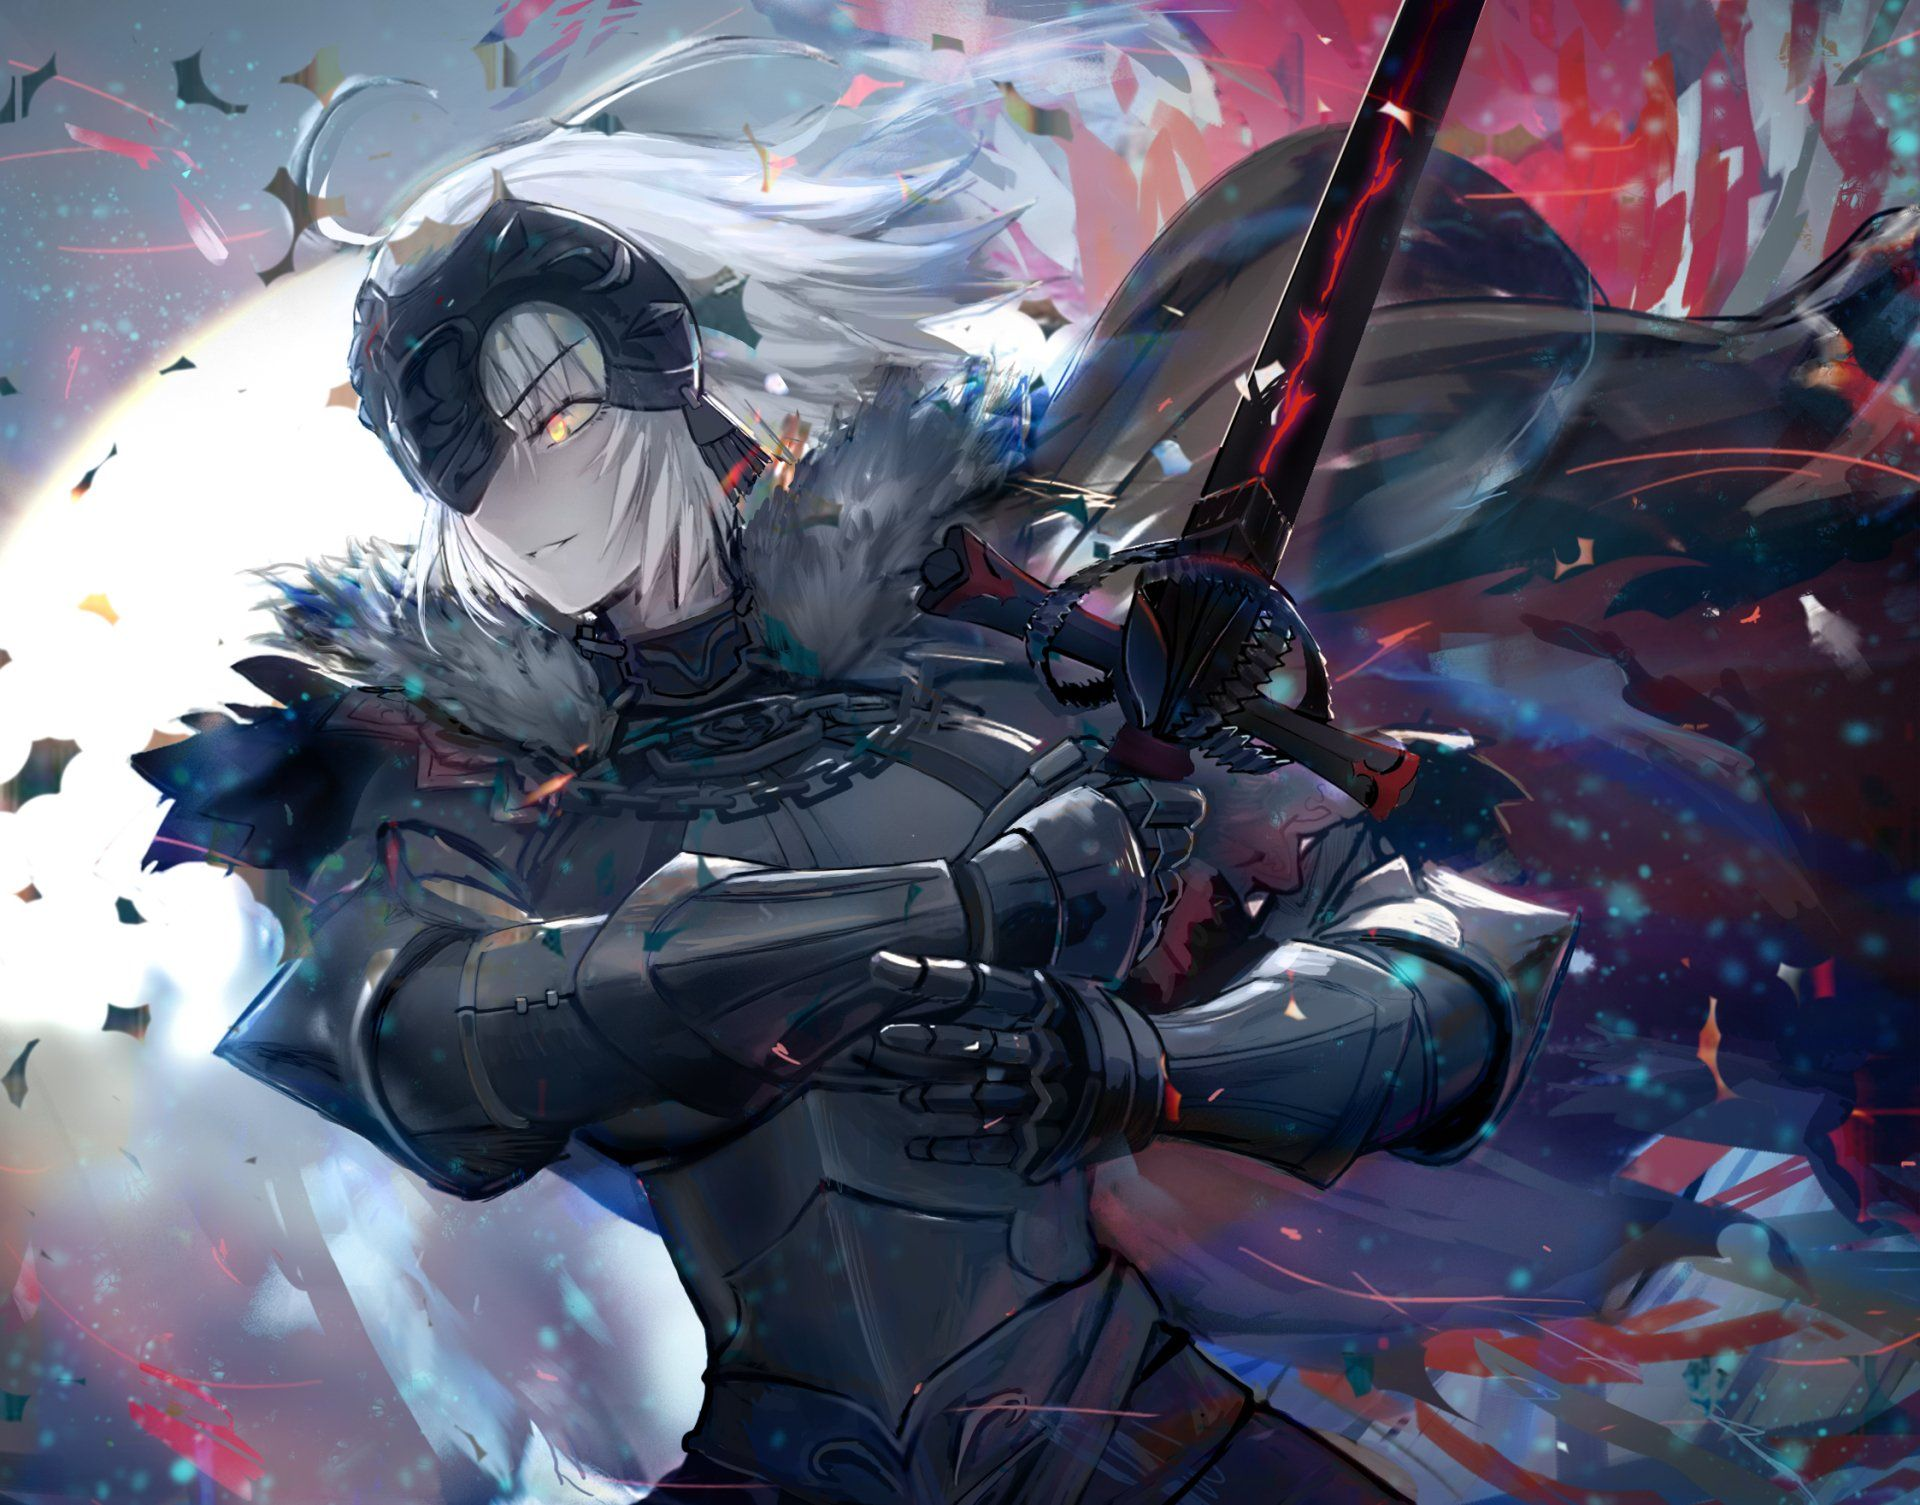 Anime Fate Grand Order Avenger Fate Grand Order Jeanne D Arc Alter Fate Series Woman Warrior Sword Yellow Eyes W Anime Joan Of Arc Fate Fate Anime Series